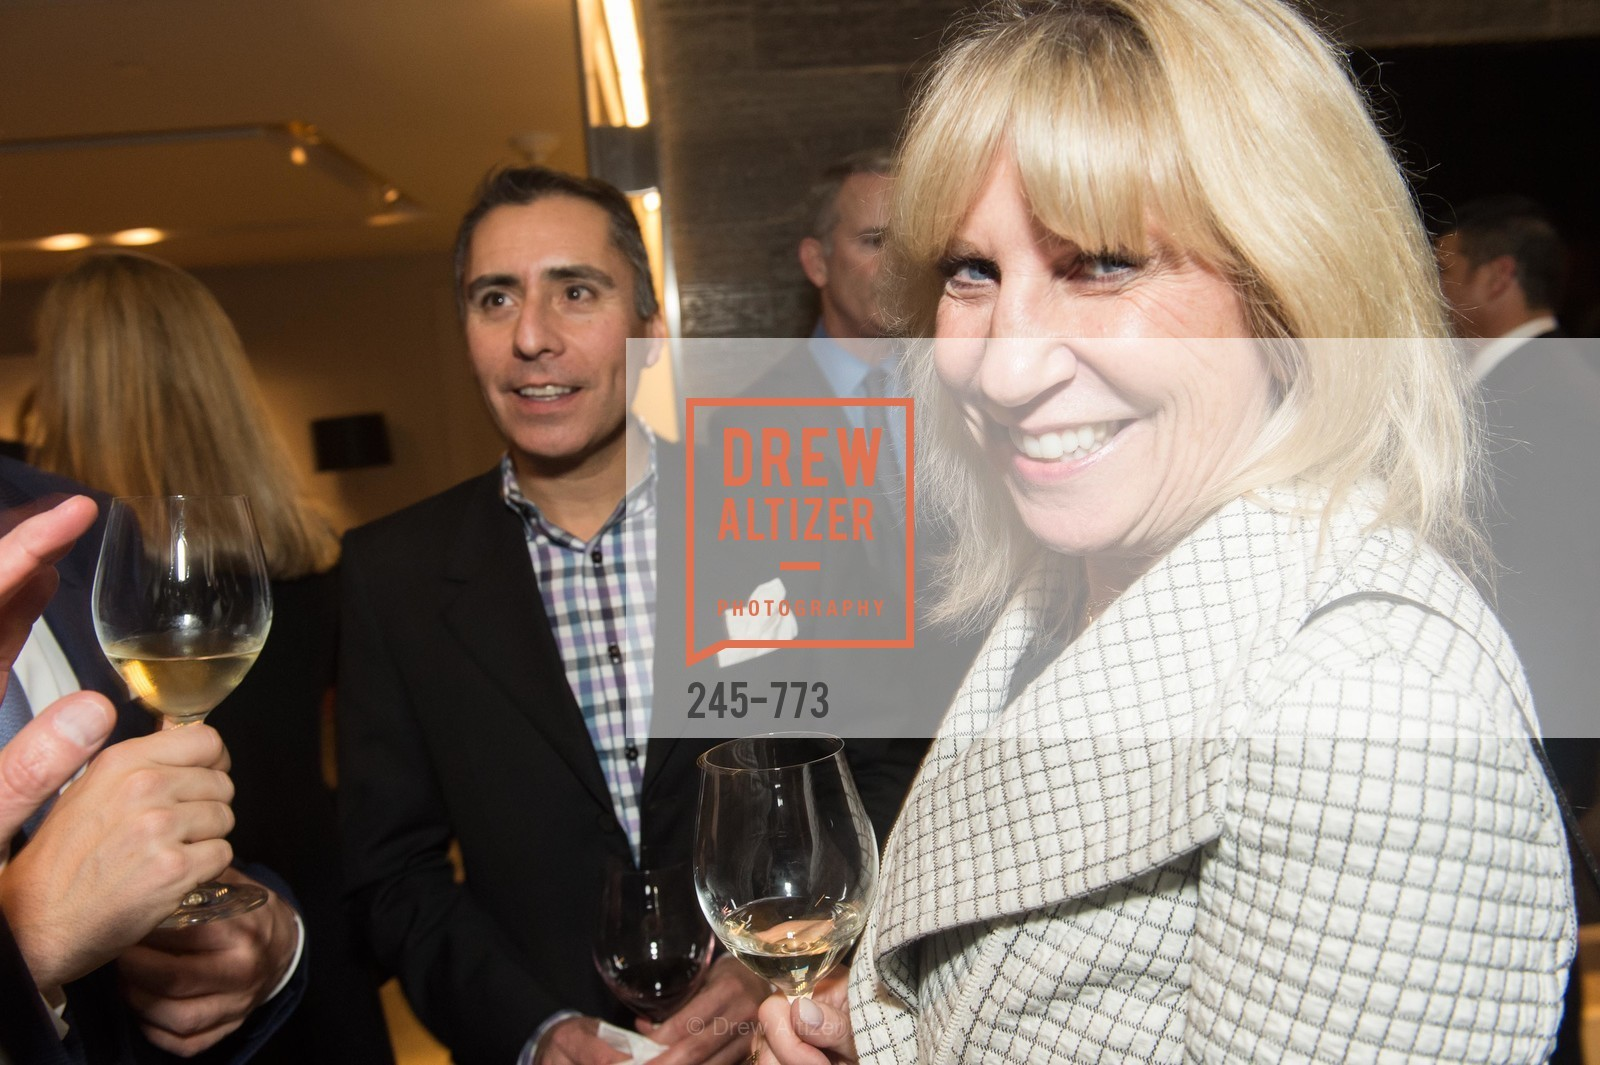 Paul Ybarbo, Kathy Korte, Sotheby's International Realty's Celebrates the New Year, The Battery, Penthouse. 717 Battery St, January 27th, 2016,Drew Altizer, Drew Altizer Photography, full-service agency, private events, San Francisco photographer, photographer california